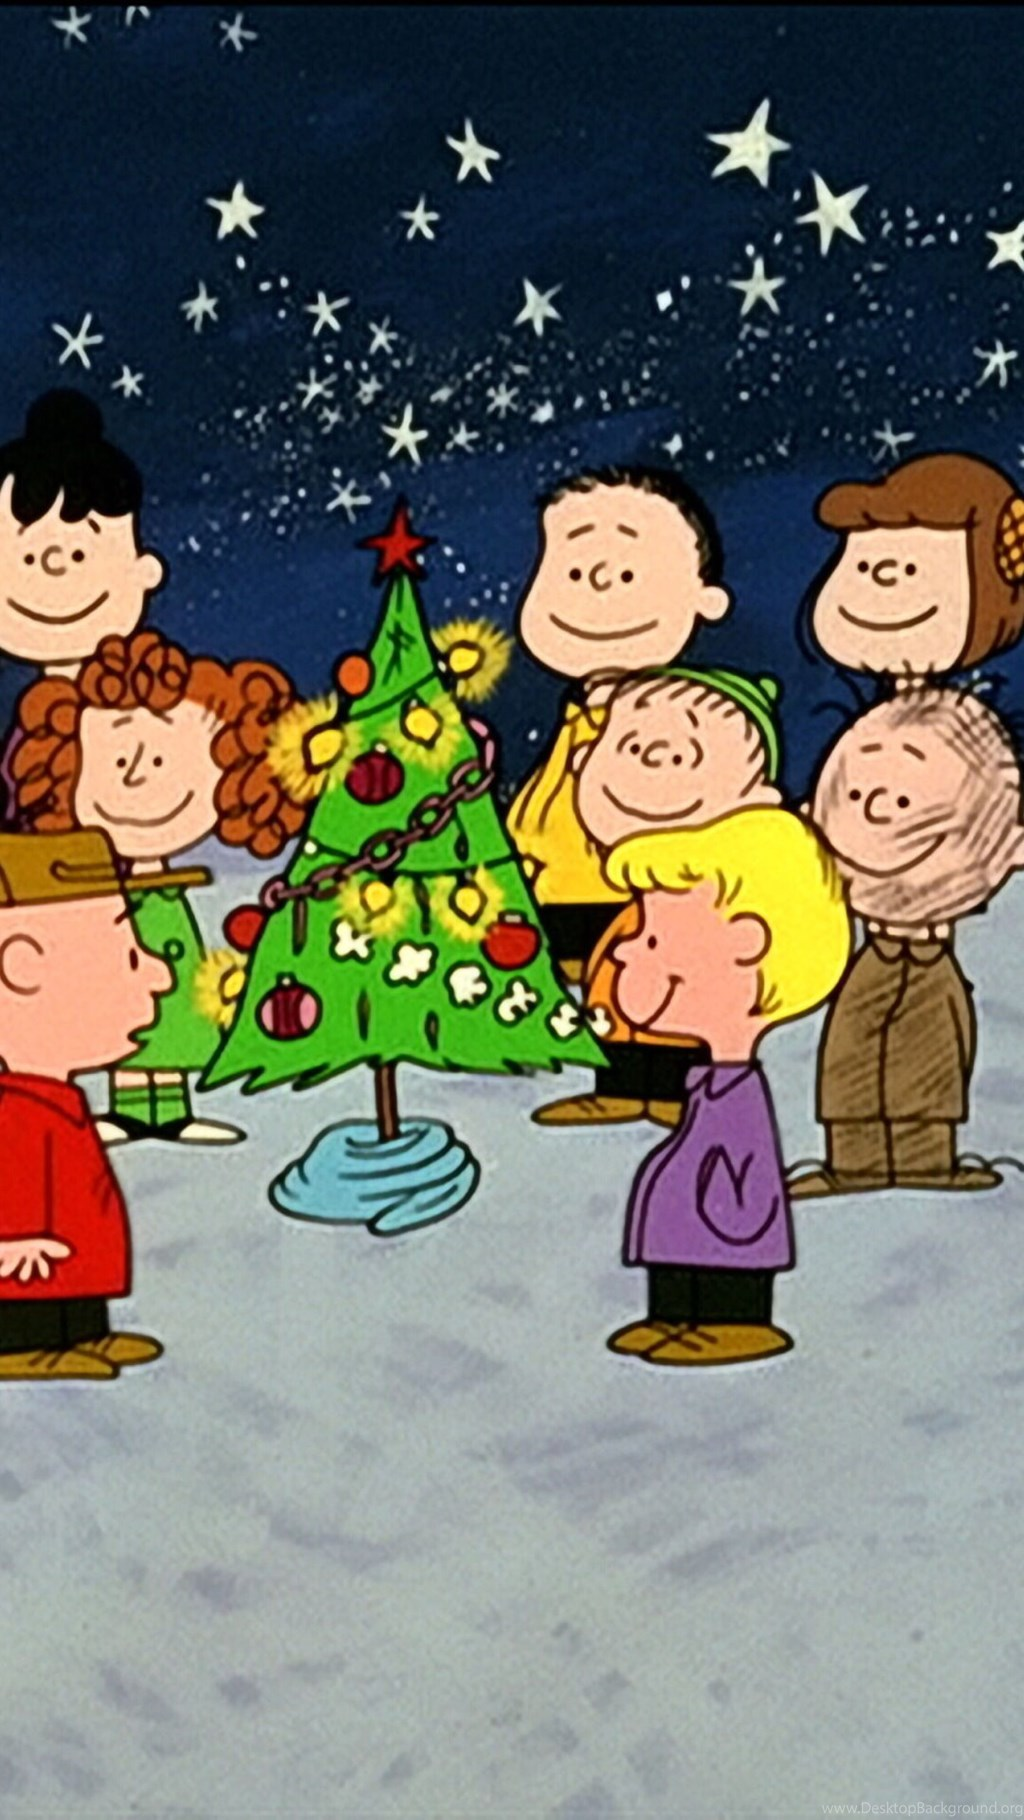 A Charlie Brown Christmas Wallpapers For Iphone 6 Plus - Christmas All About Charlie Brown , HD Wallpaper & Backgrounds